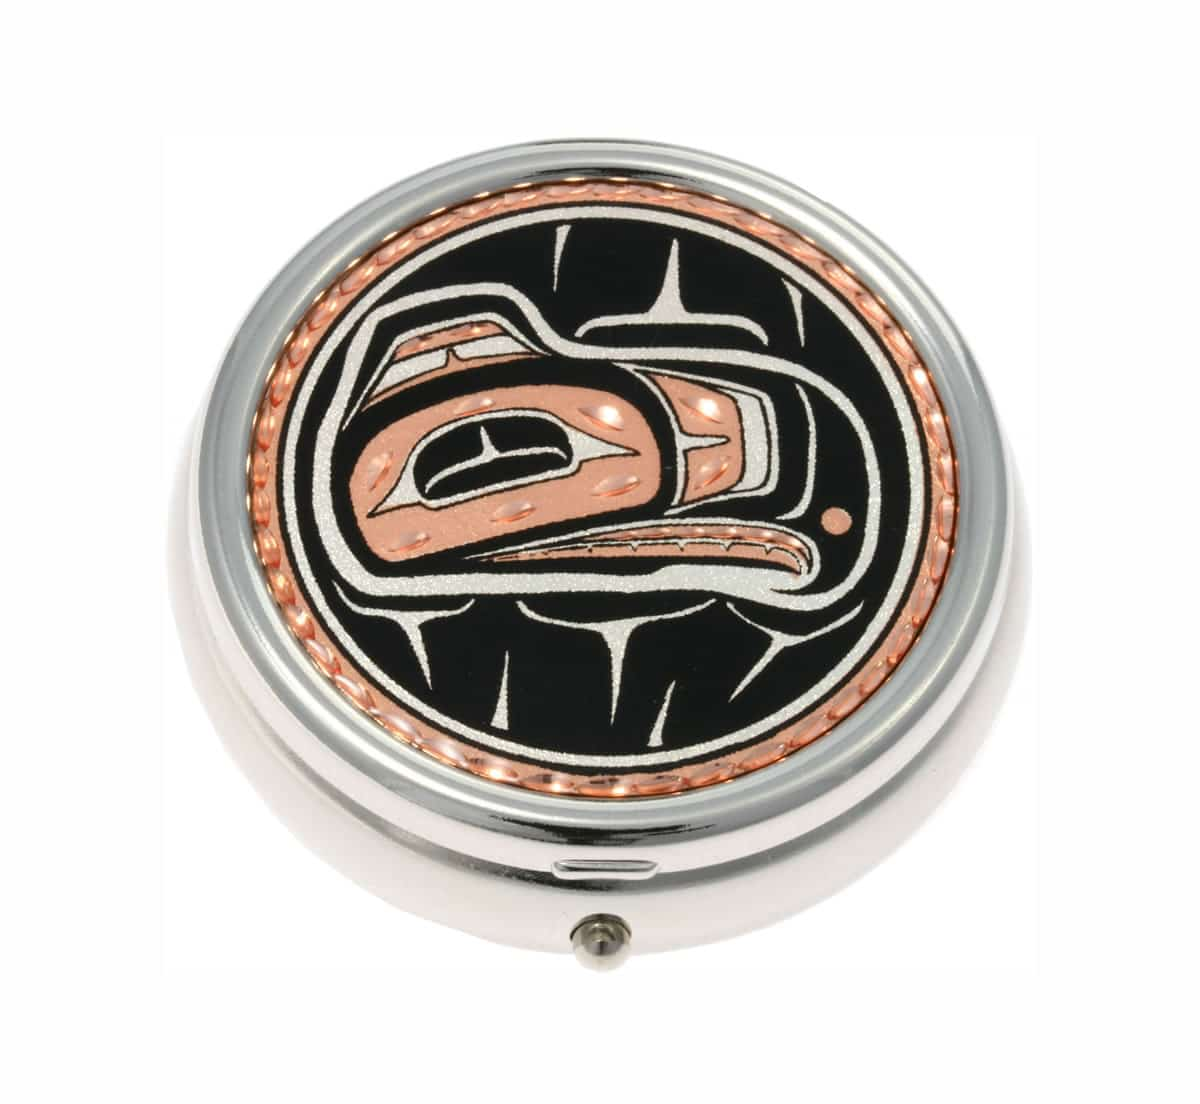 Buy Stylish Silver Color Pill Boxes Embellished with American Native Haida Indian Eagle Copper Artwork